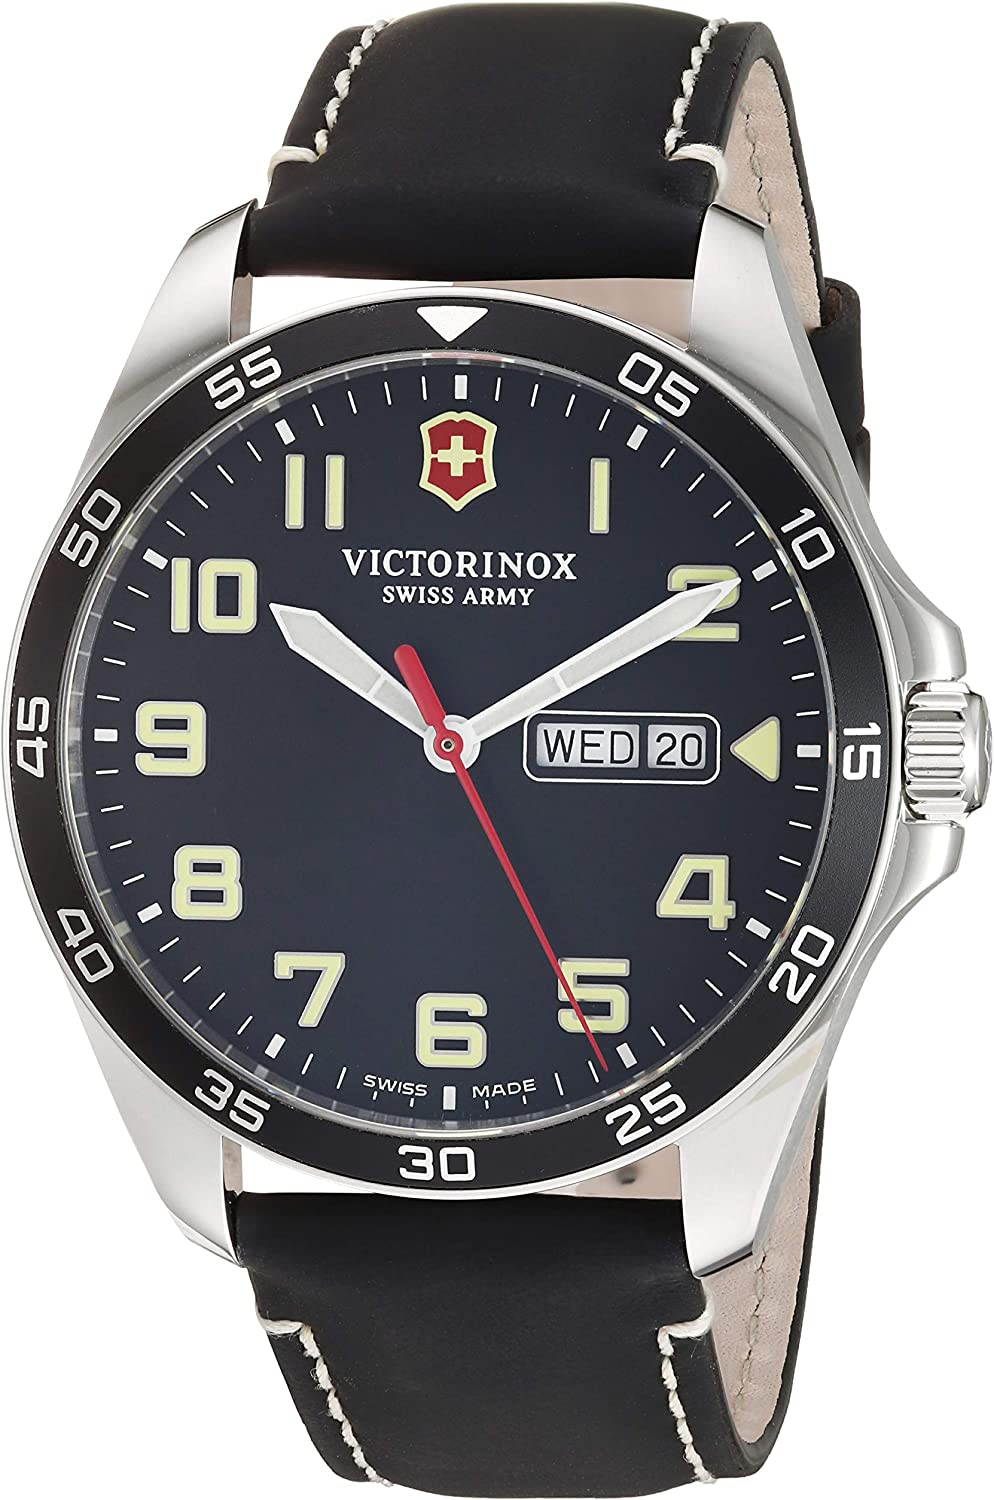 Victorinox Men's Fieldforce Stainless Steel Analog Quartz Watch with Leather Strap, Black, 20 (Model: 241846)